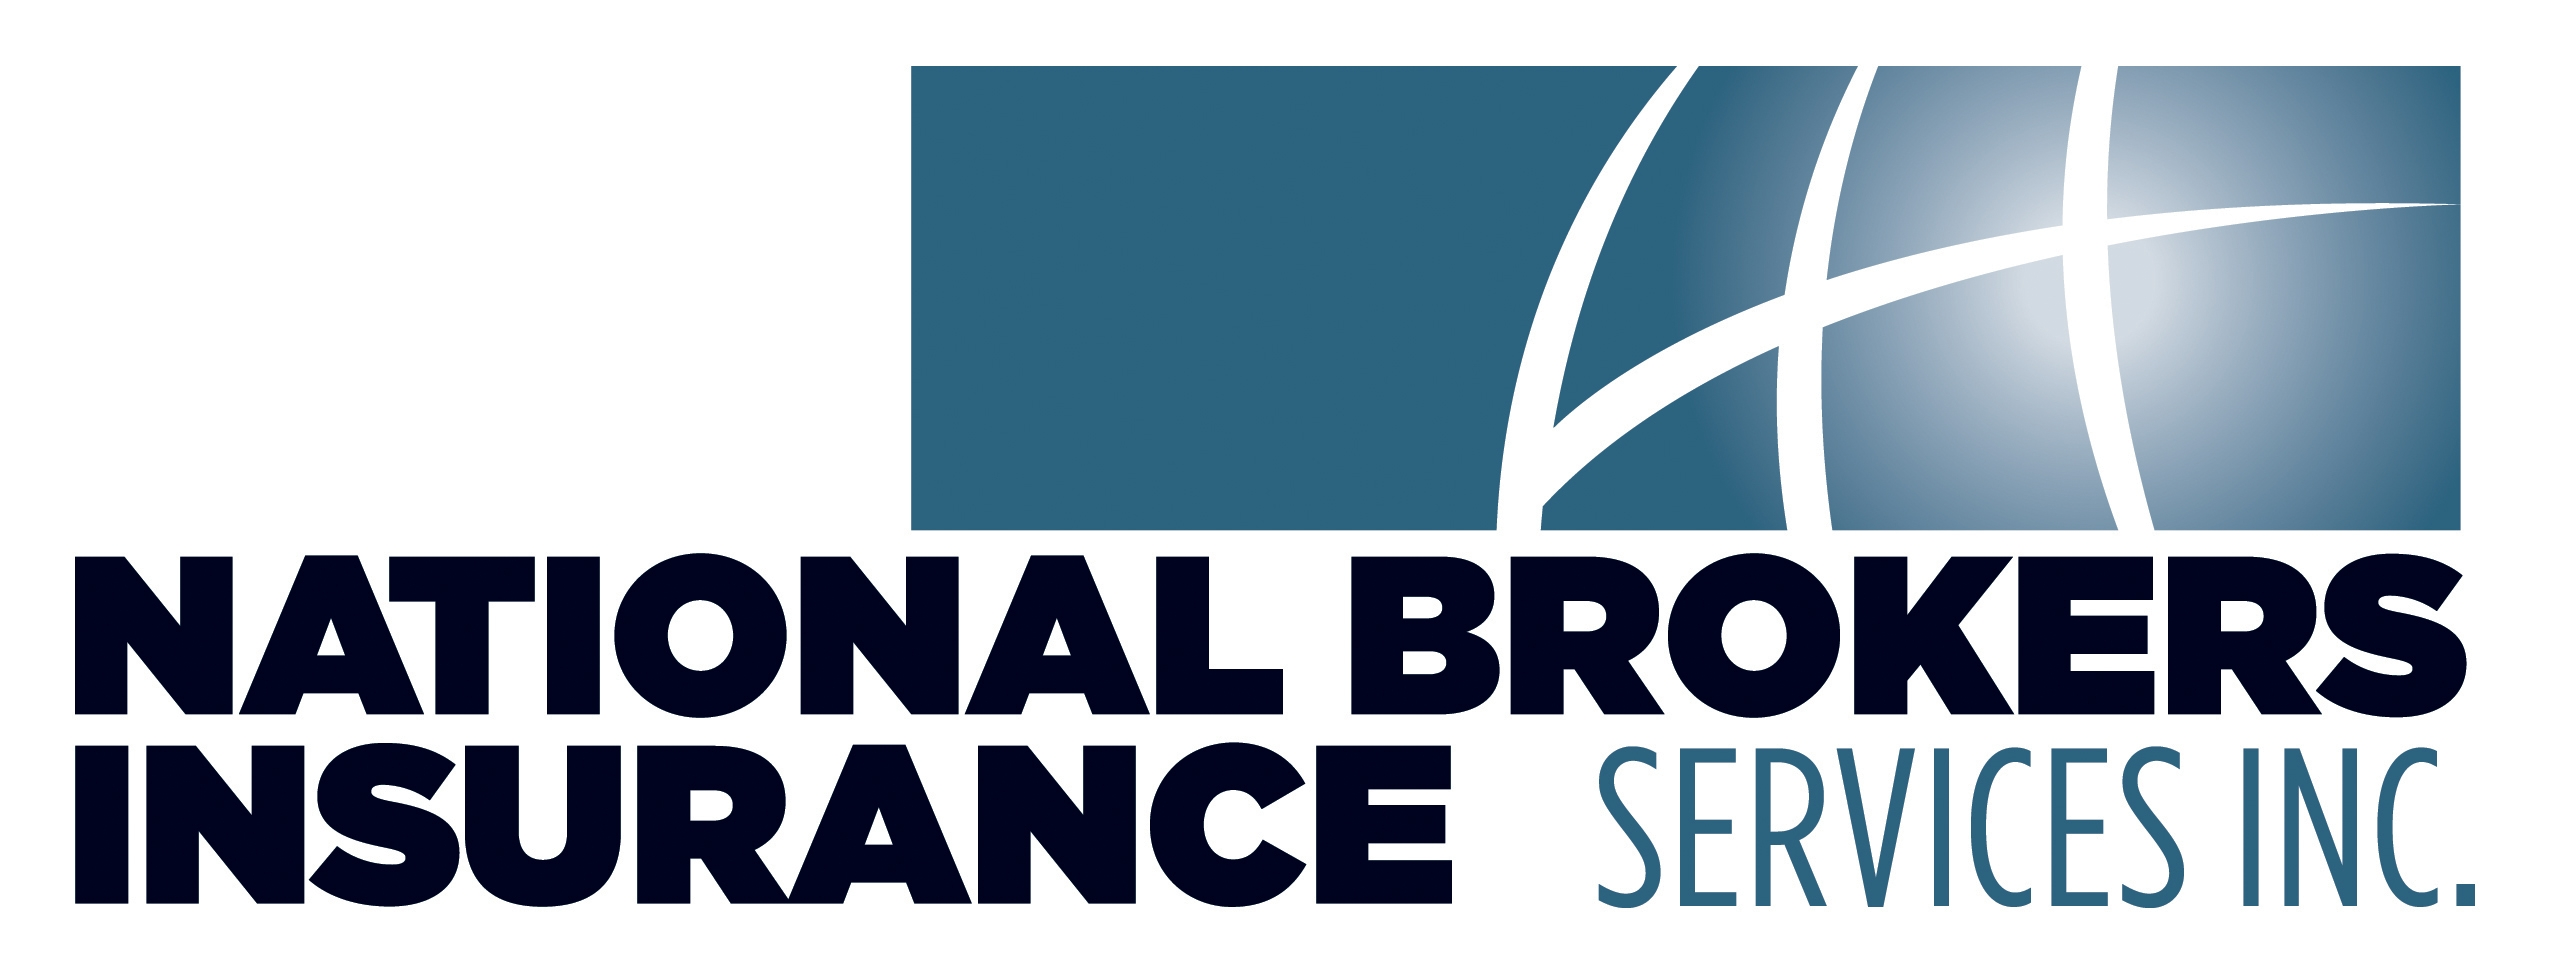 National Brokers Insurance Services Inc. logo